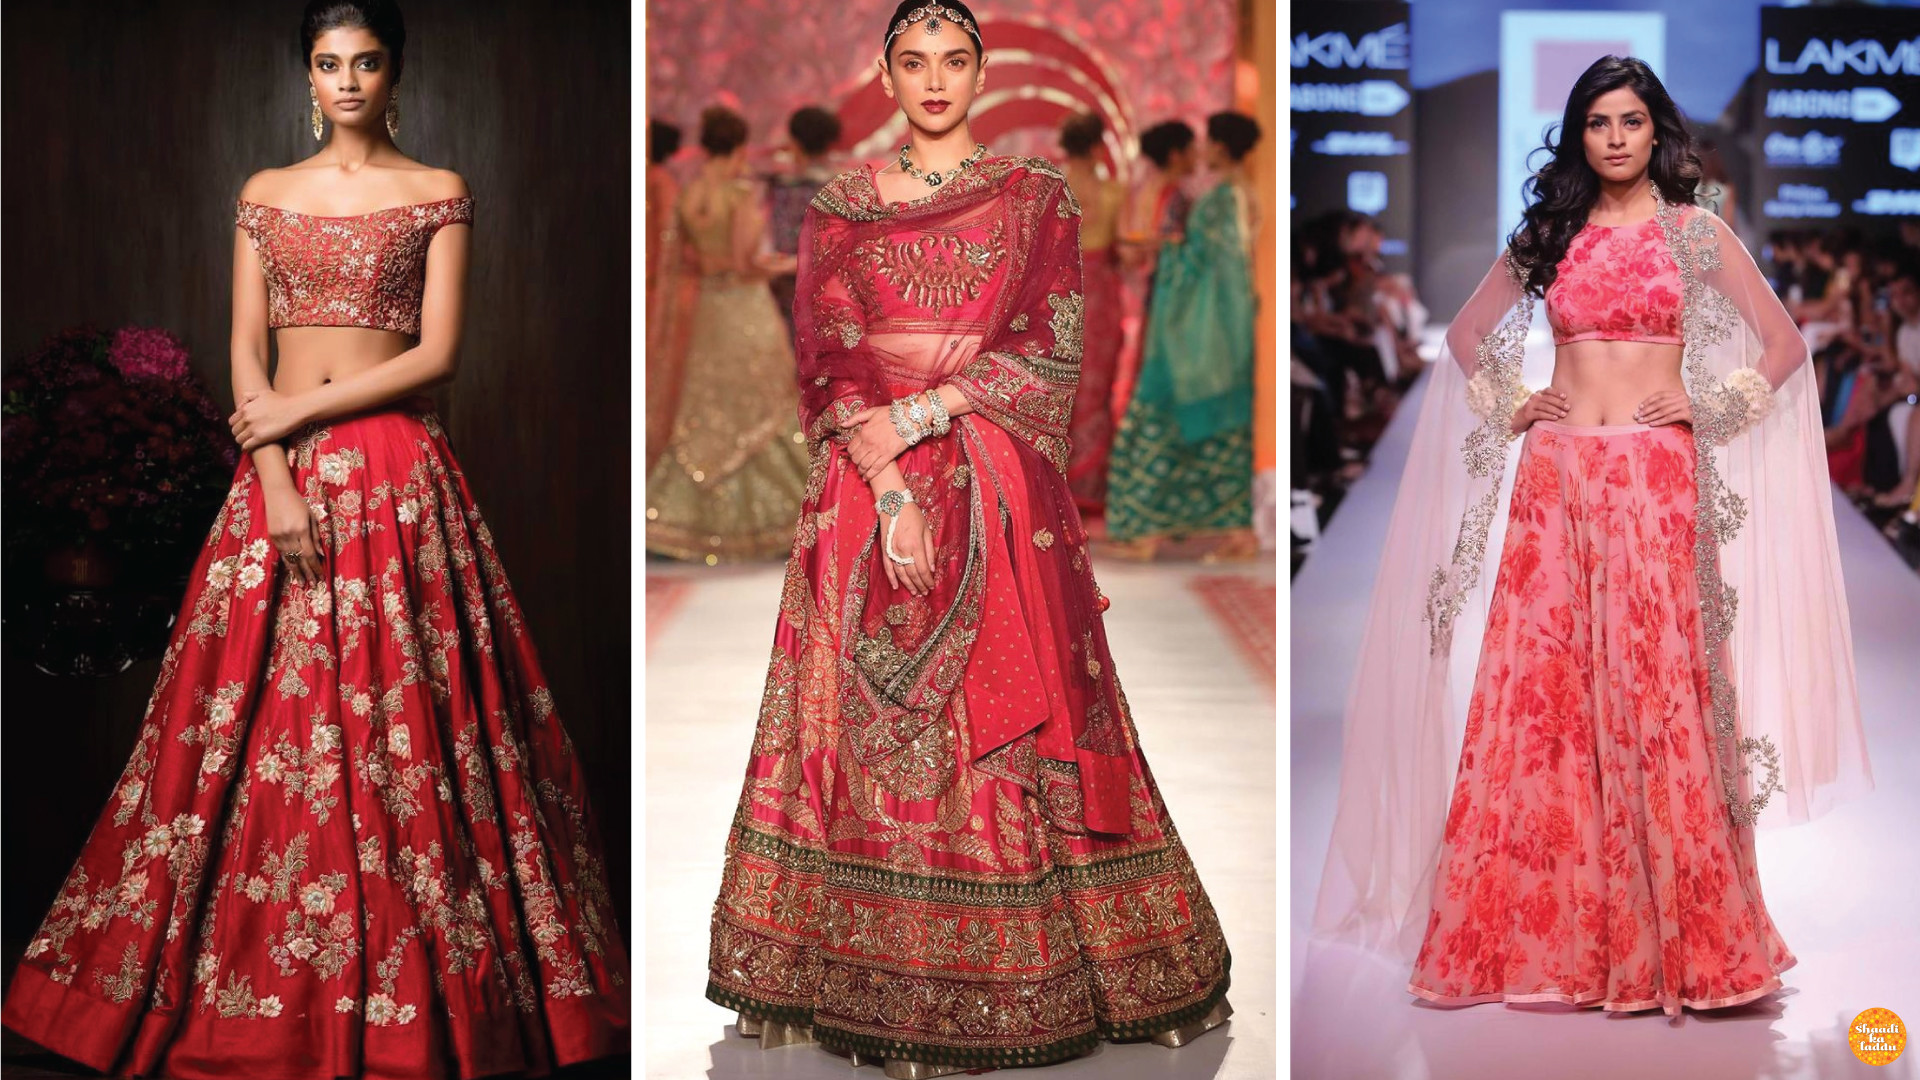 model wearing Expensive bridal lehengas